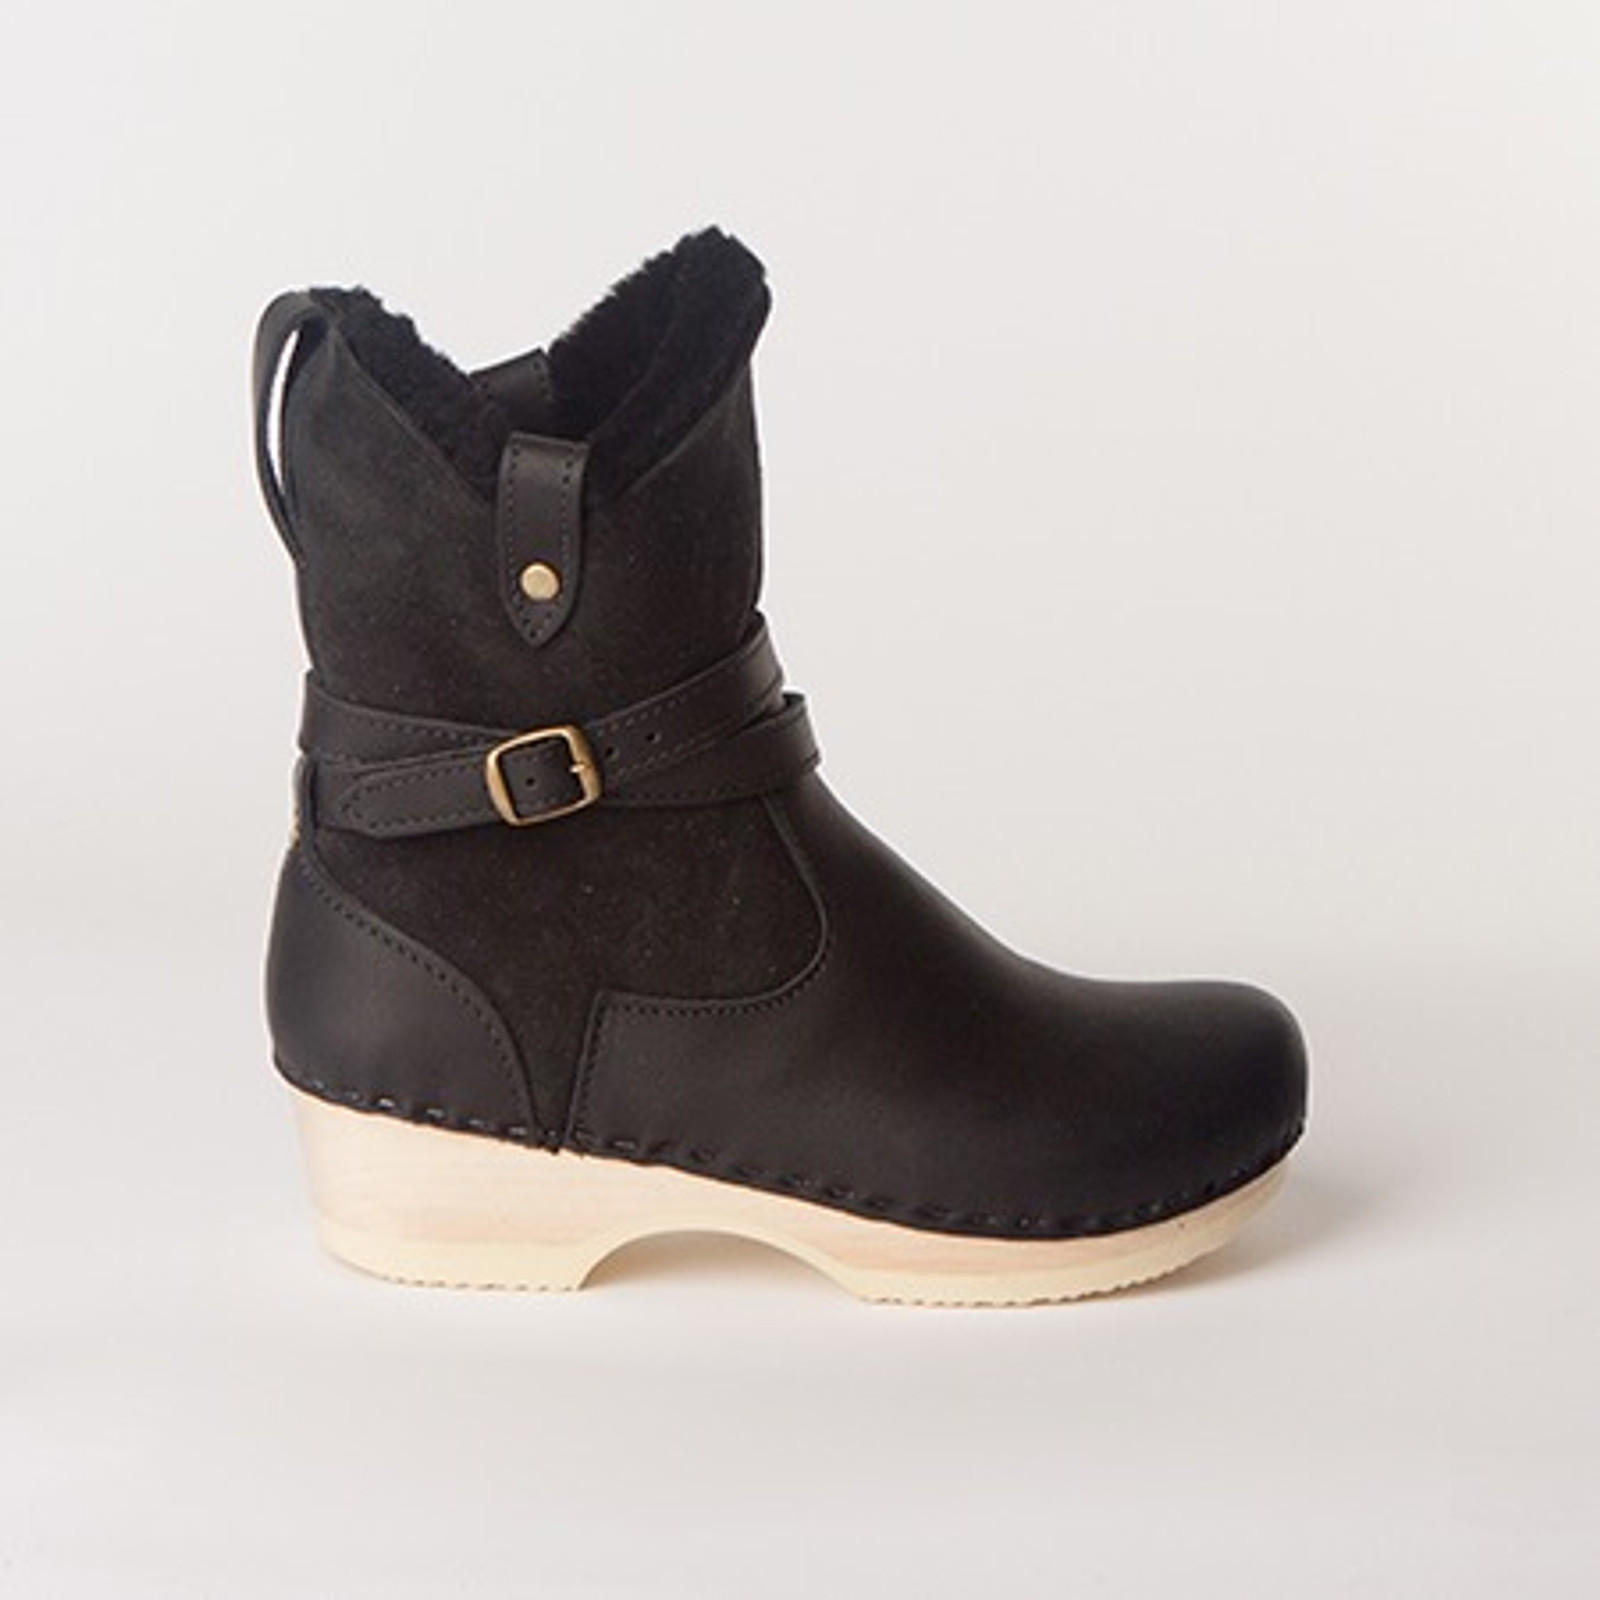 Lucy Boots - Low Heels